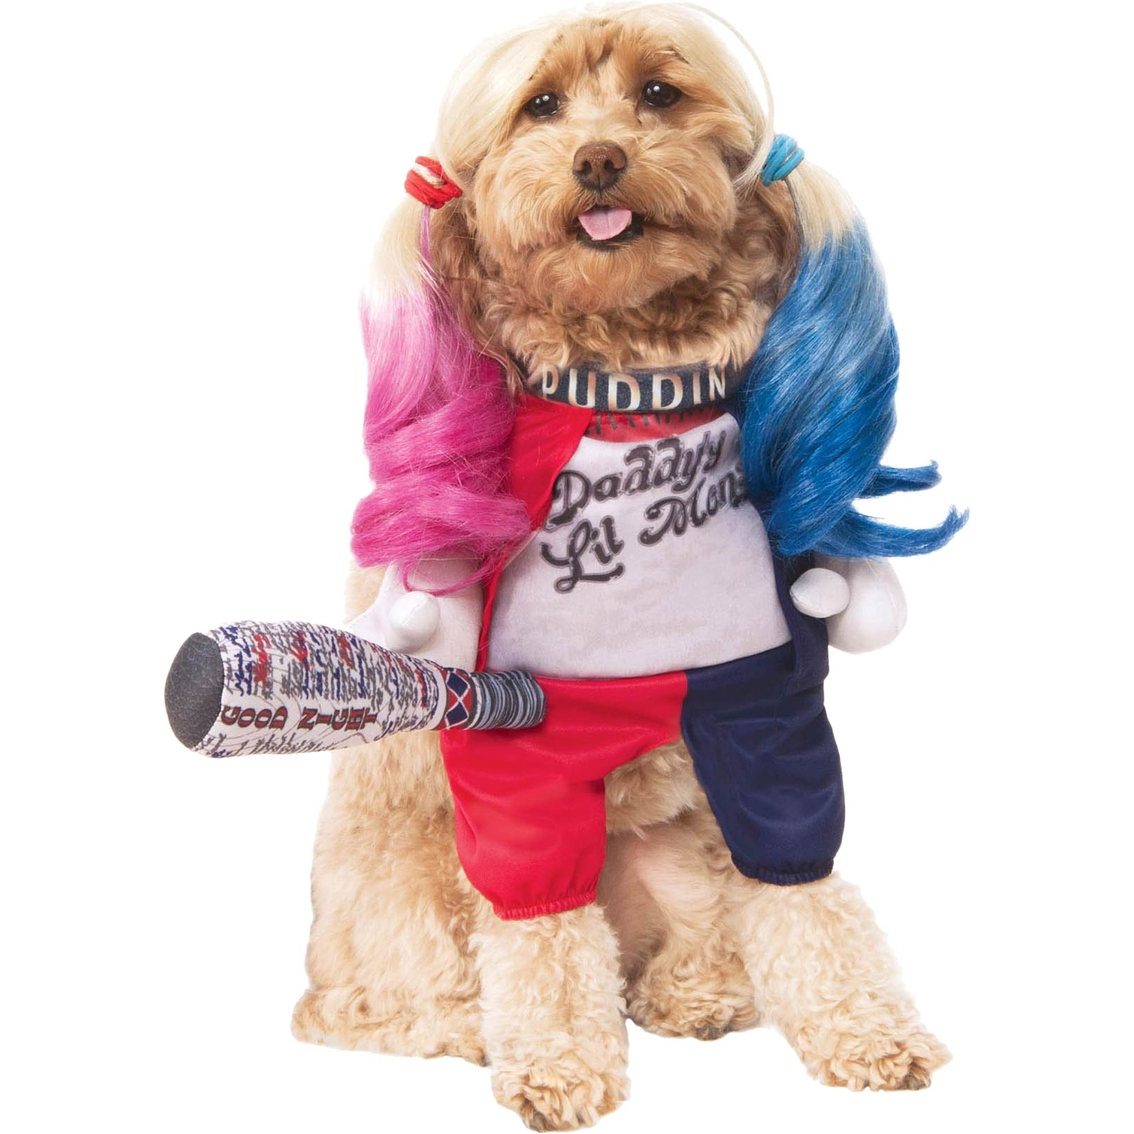 c05f0622a2d1 Rubie s Costume Suicide Squad Harley Quinn Dog Costume